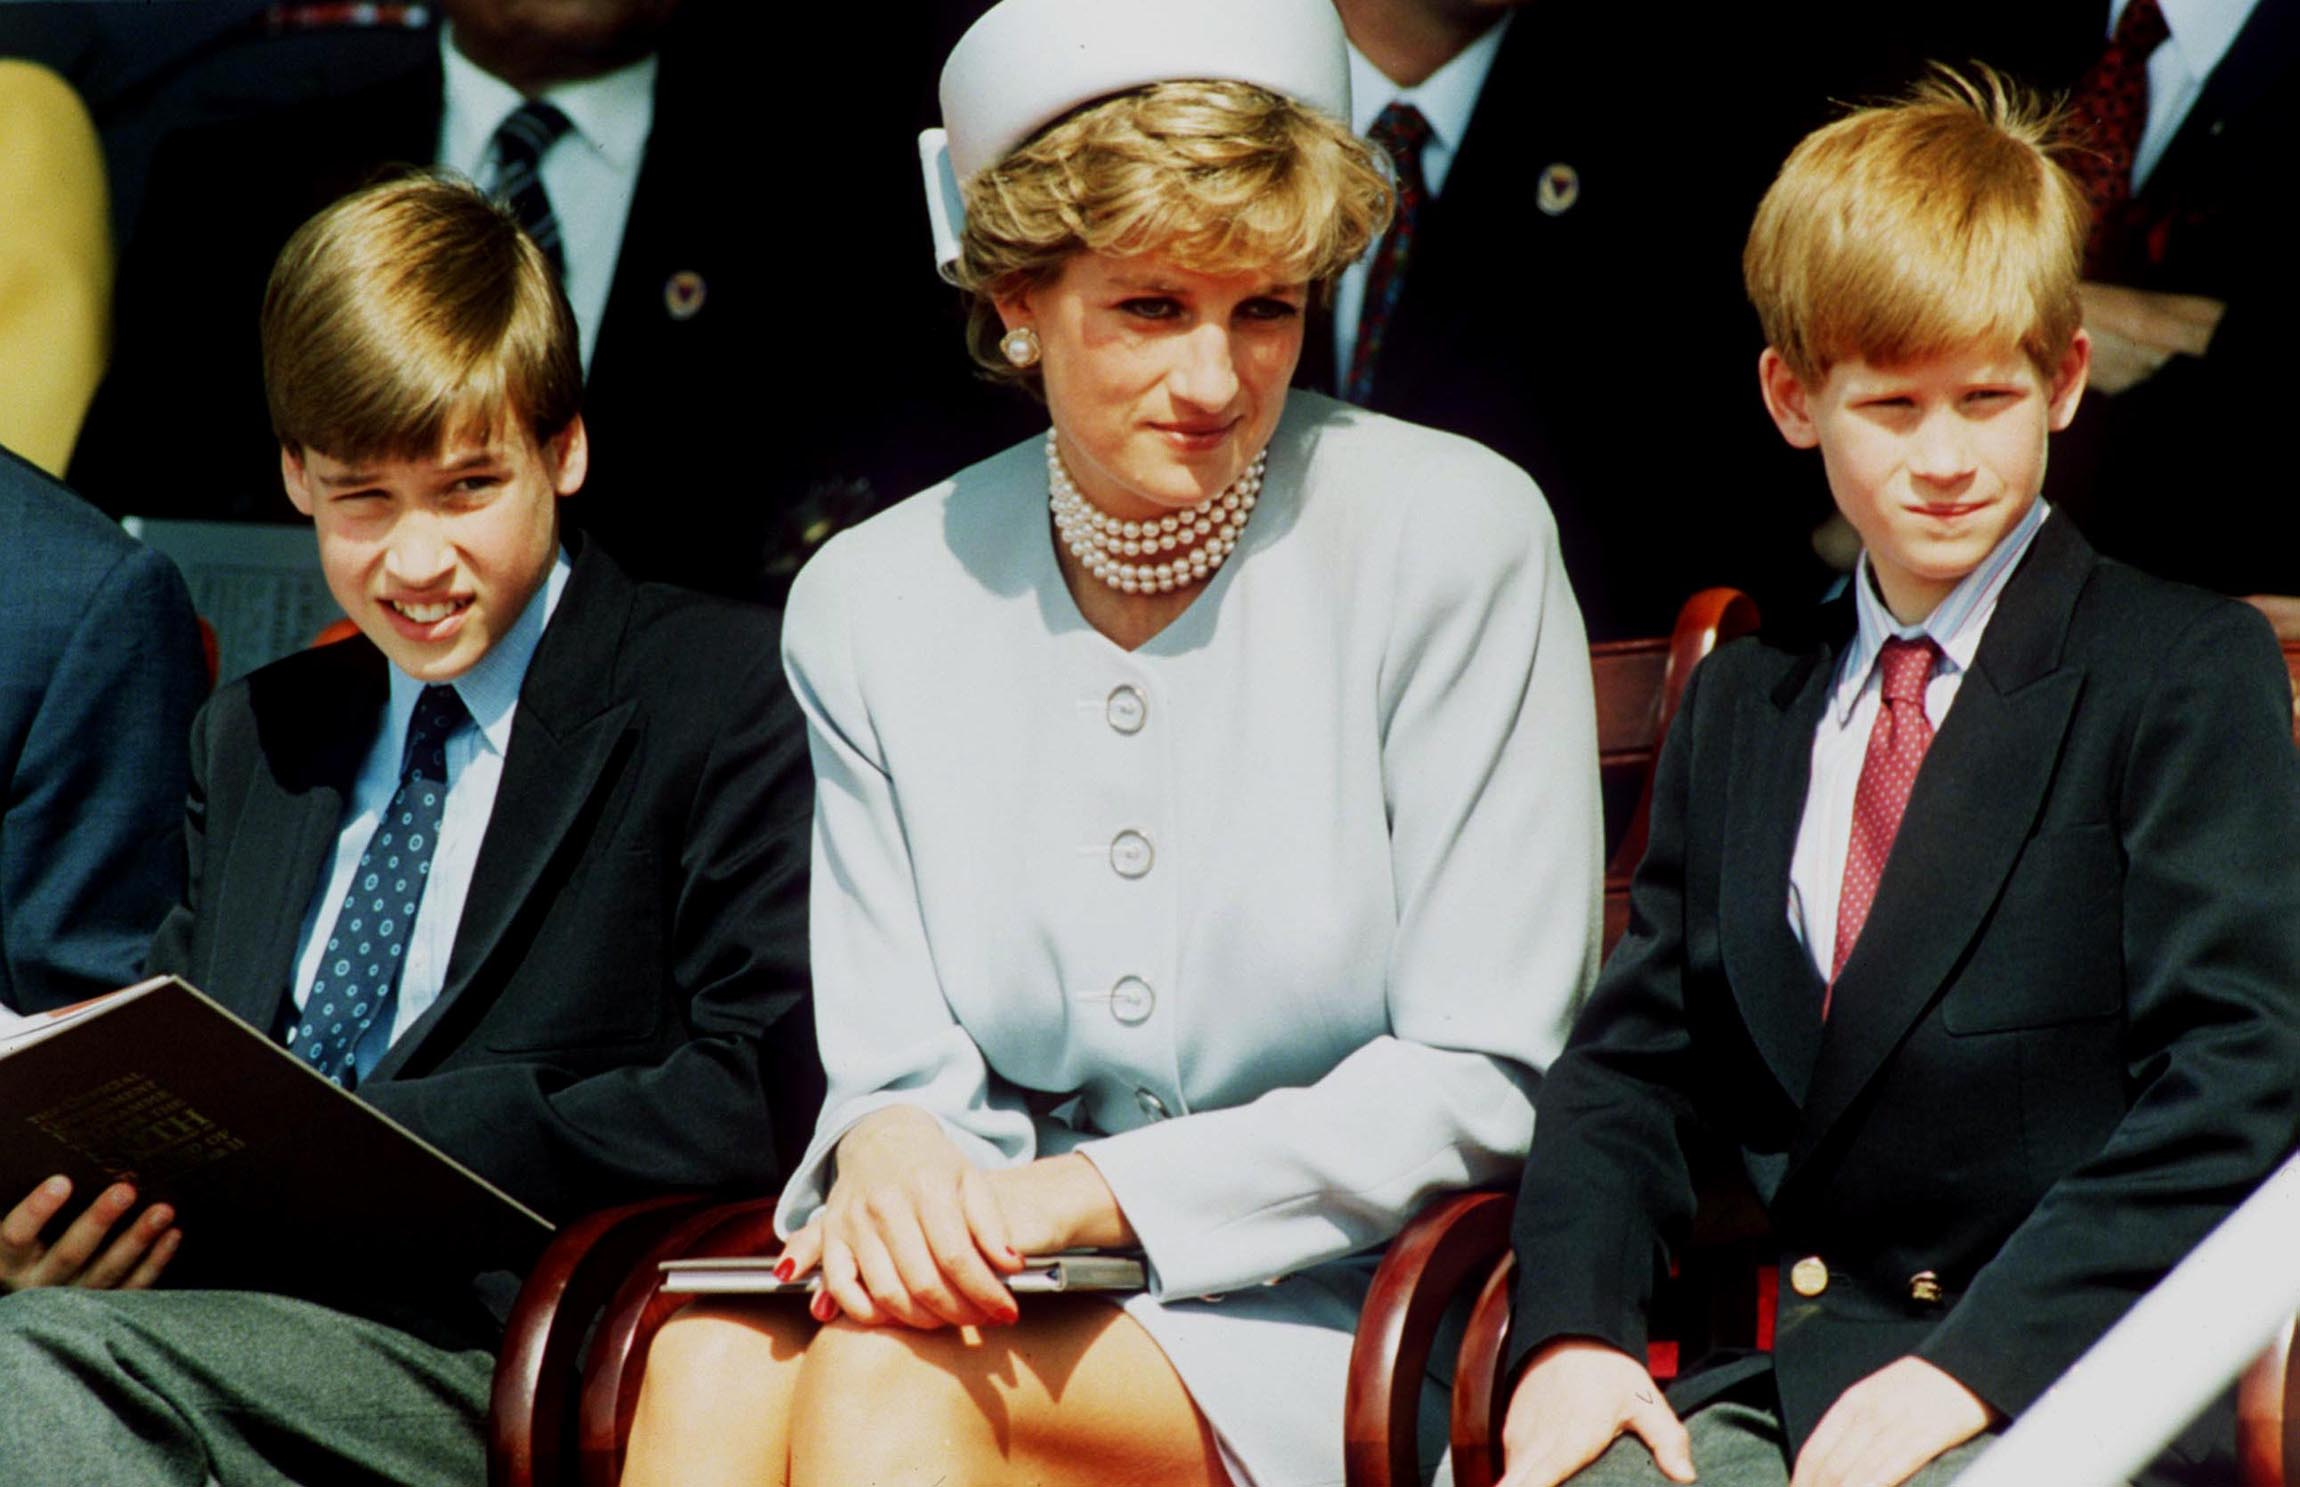 The late Princess Diana, with Prince William and Prince Harry at an official event | Photo: Getty Images